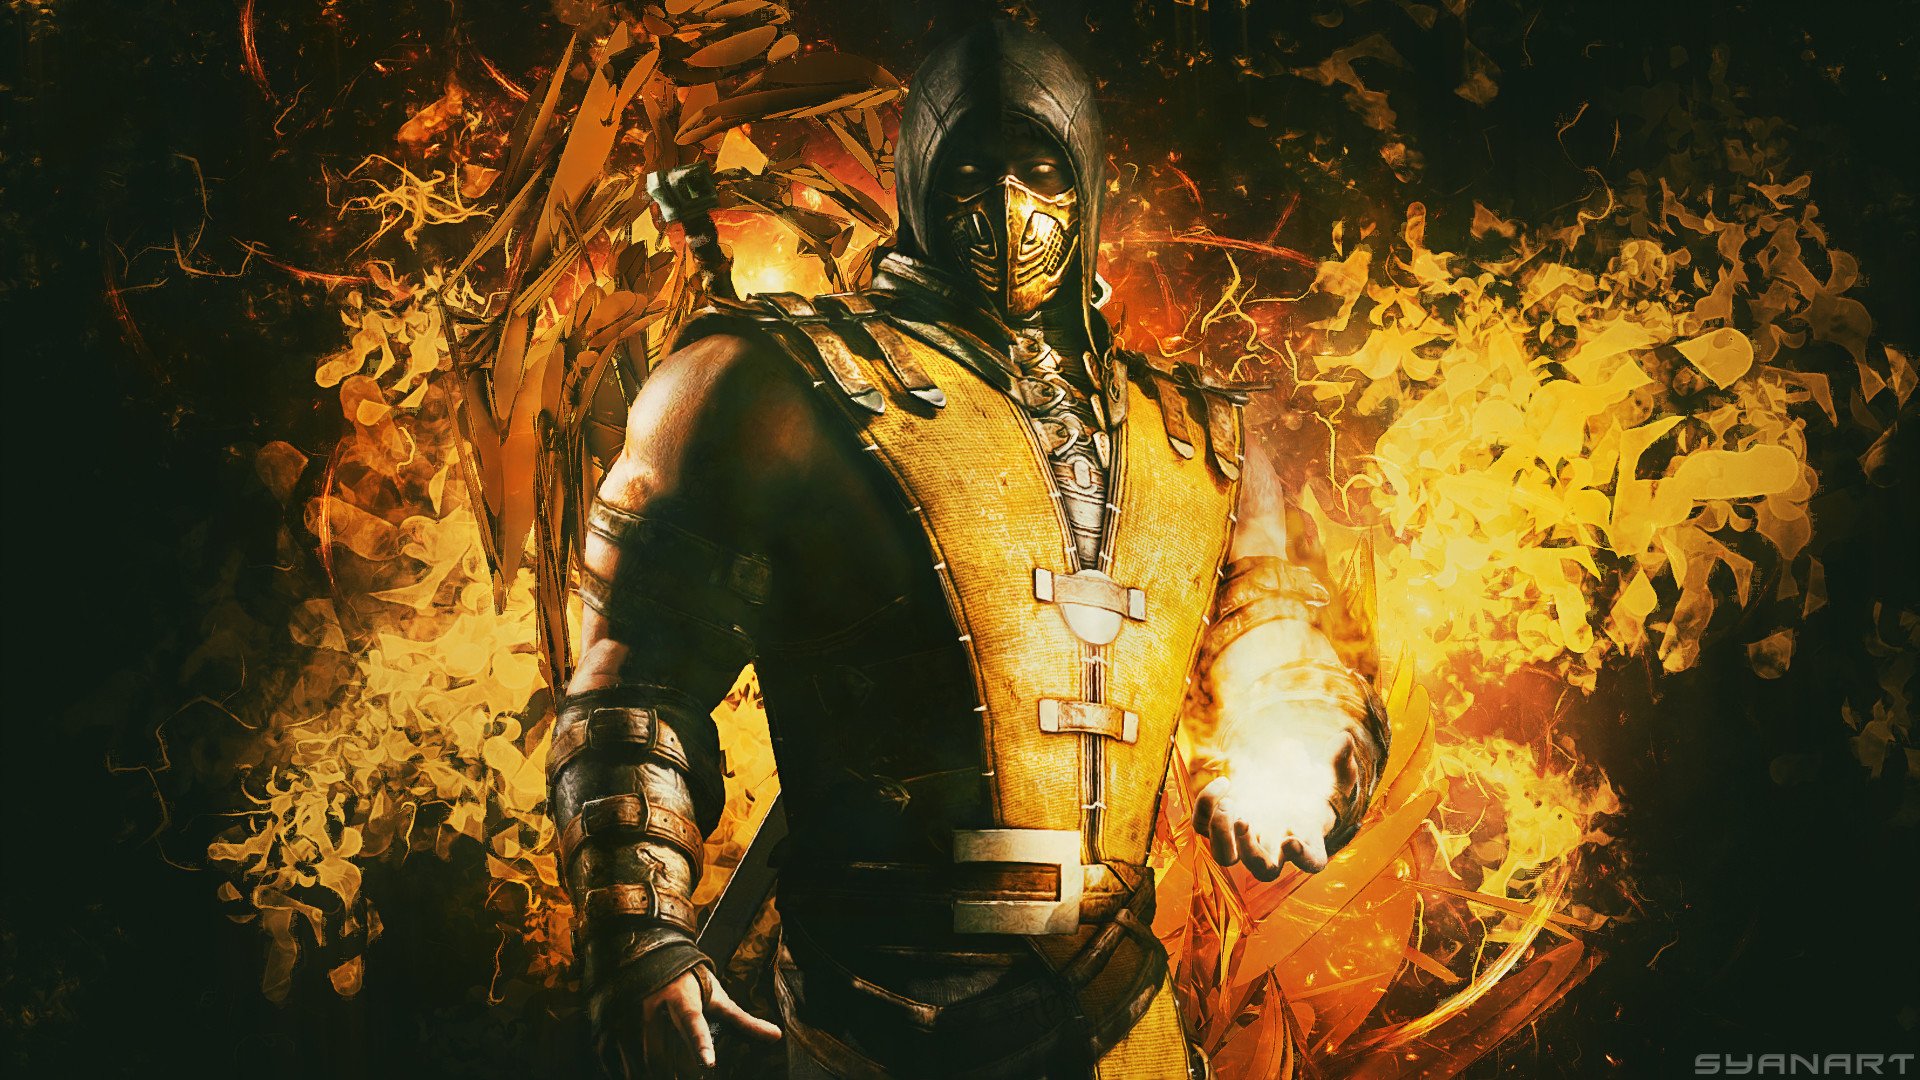 Mortal kombat scorpion wallpaper 68 images - Mortal kombat scorpion wallpaper ...